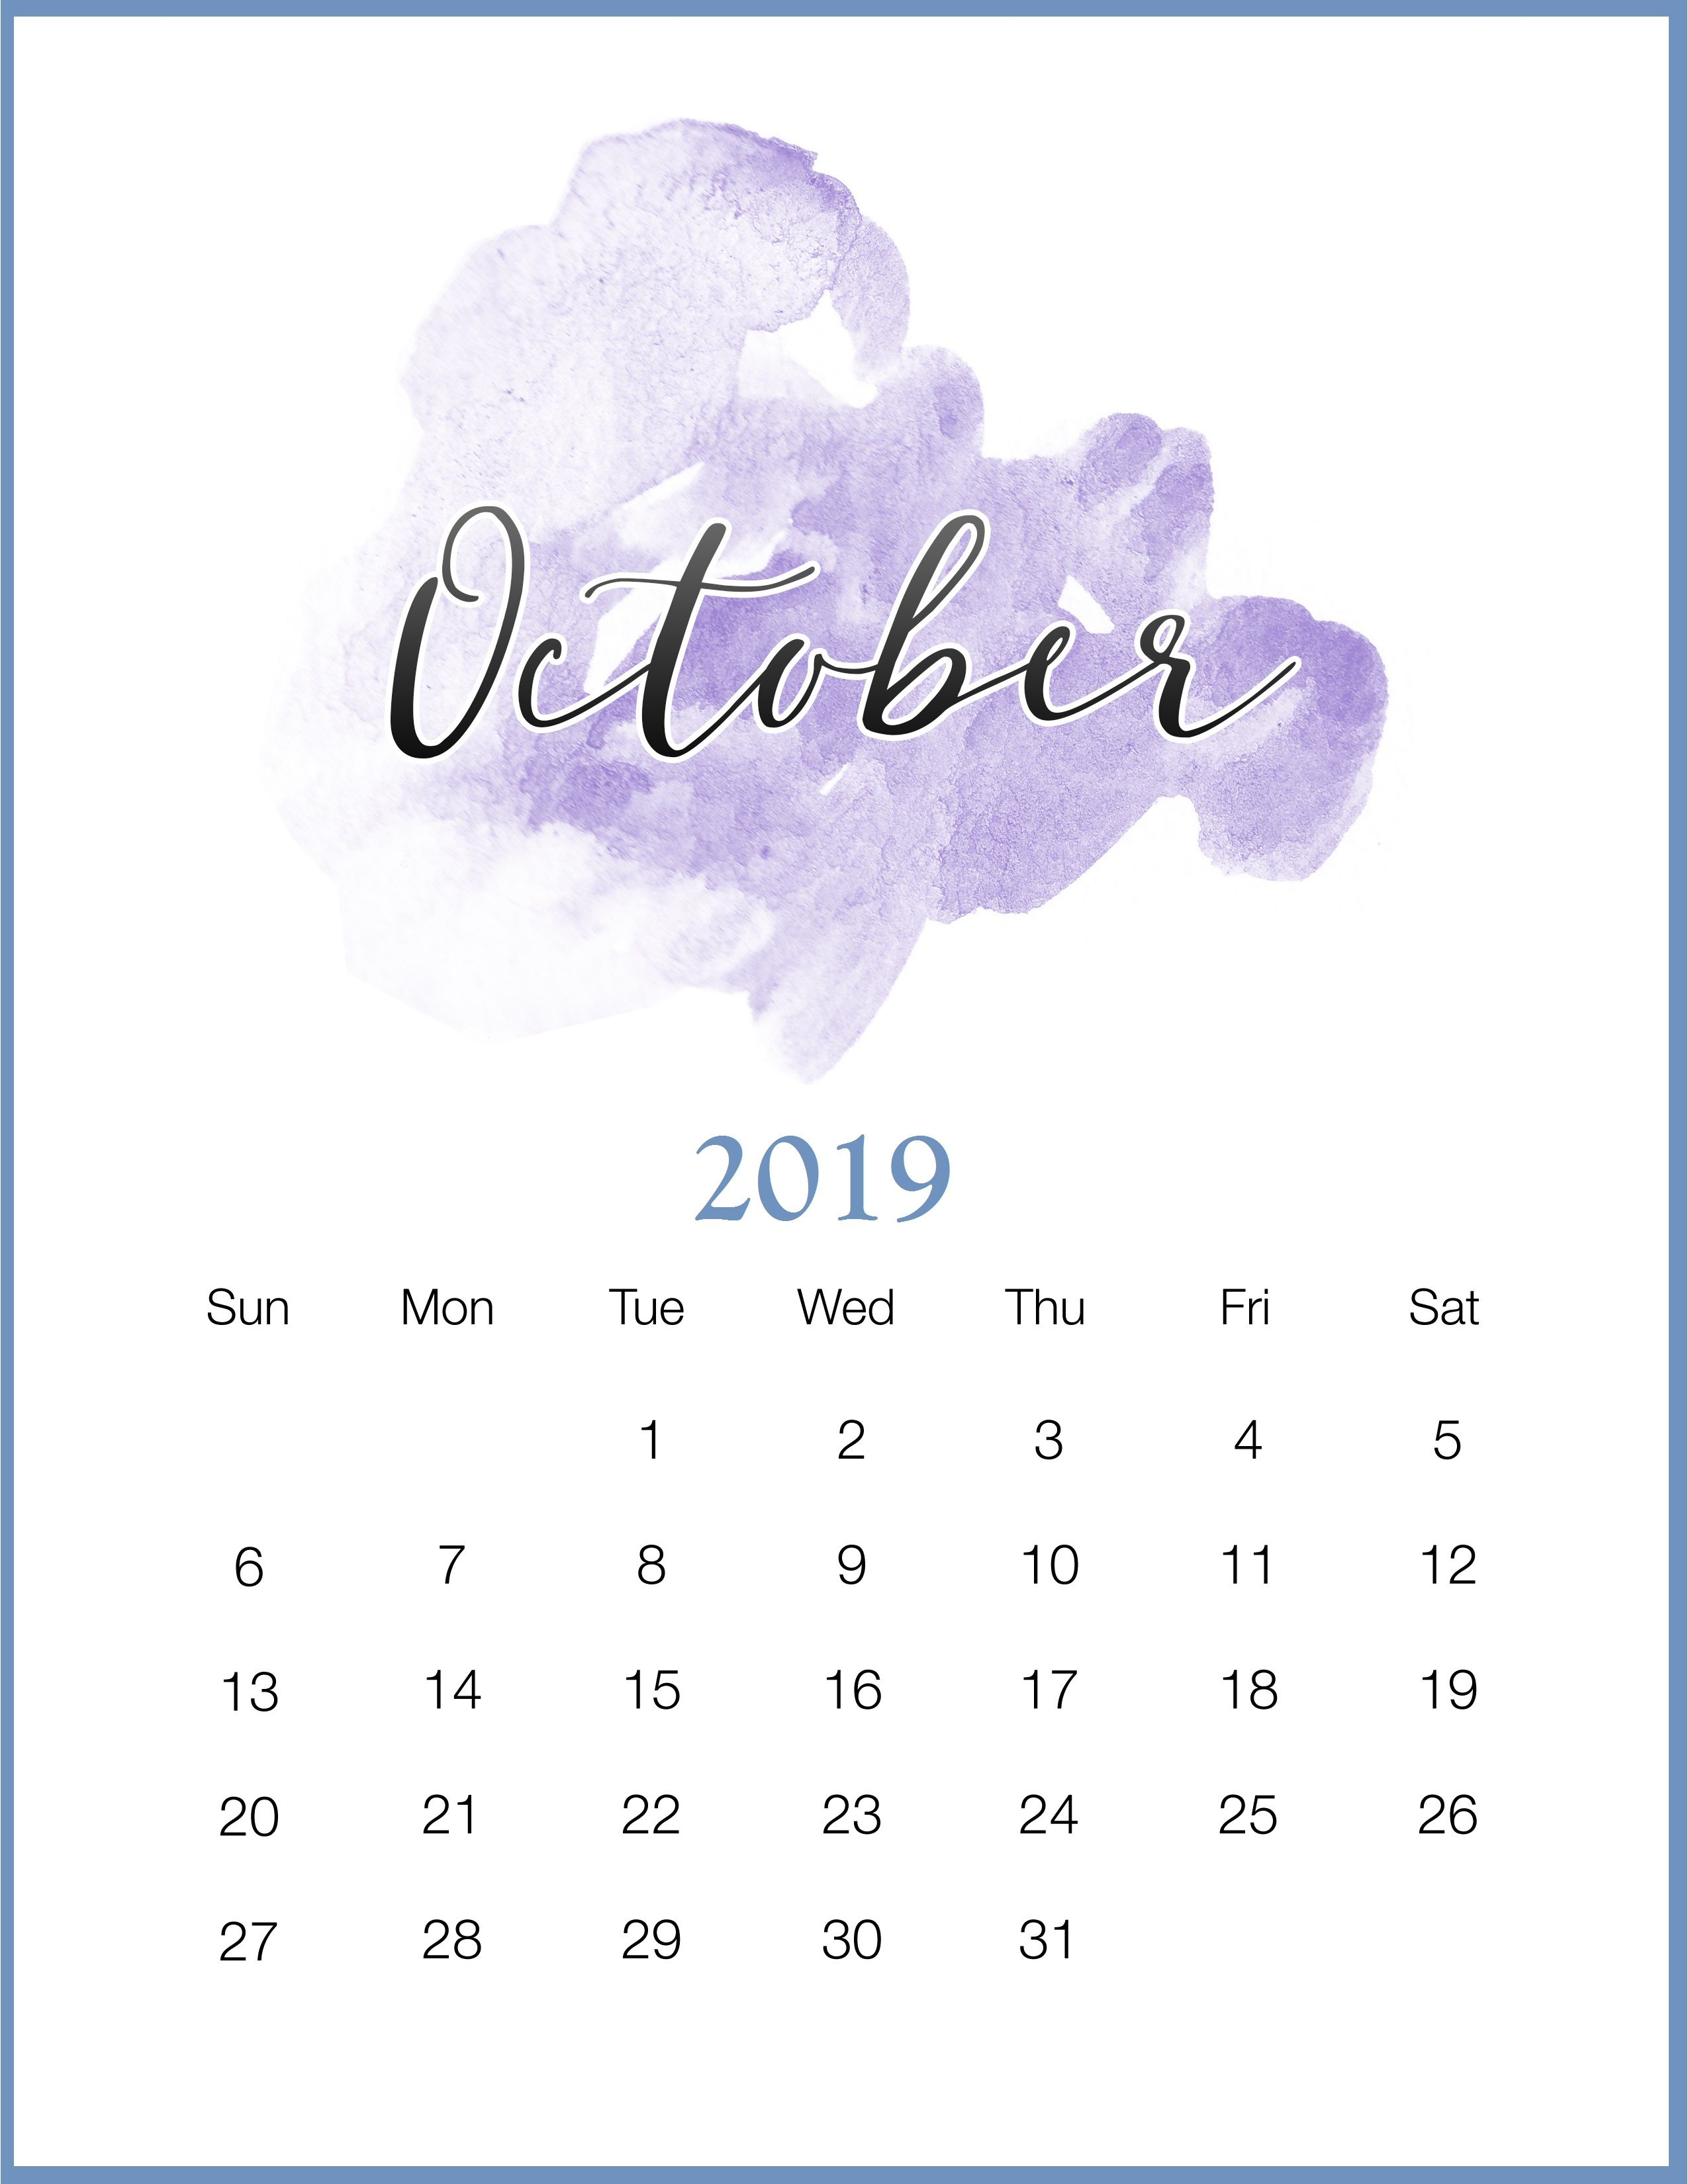 Watercolor 2019 Monthly Printable Calendar Ideias De Calendario